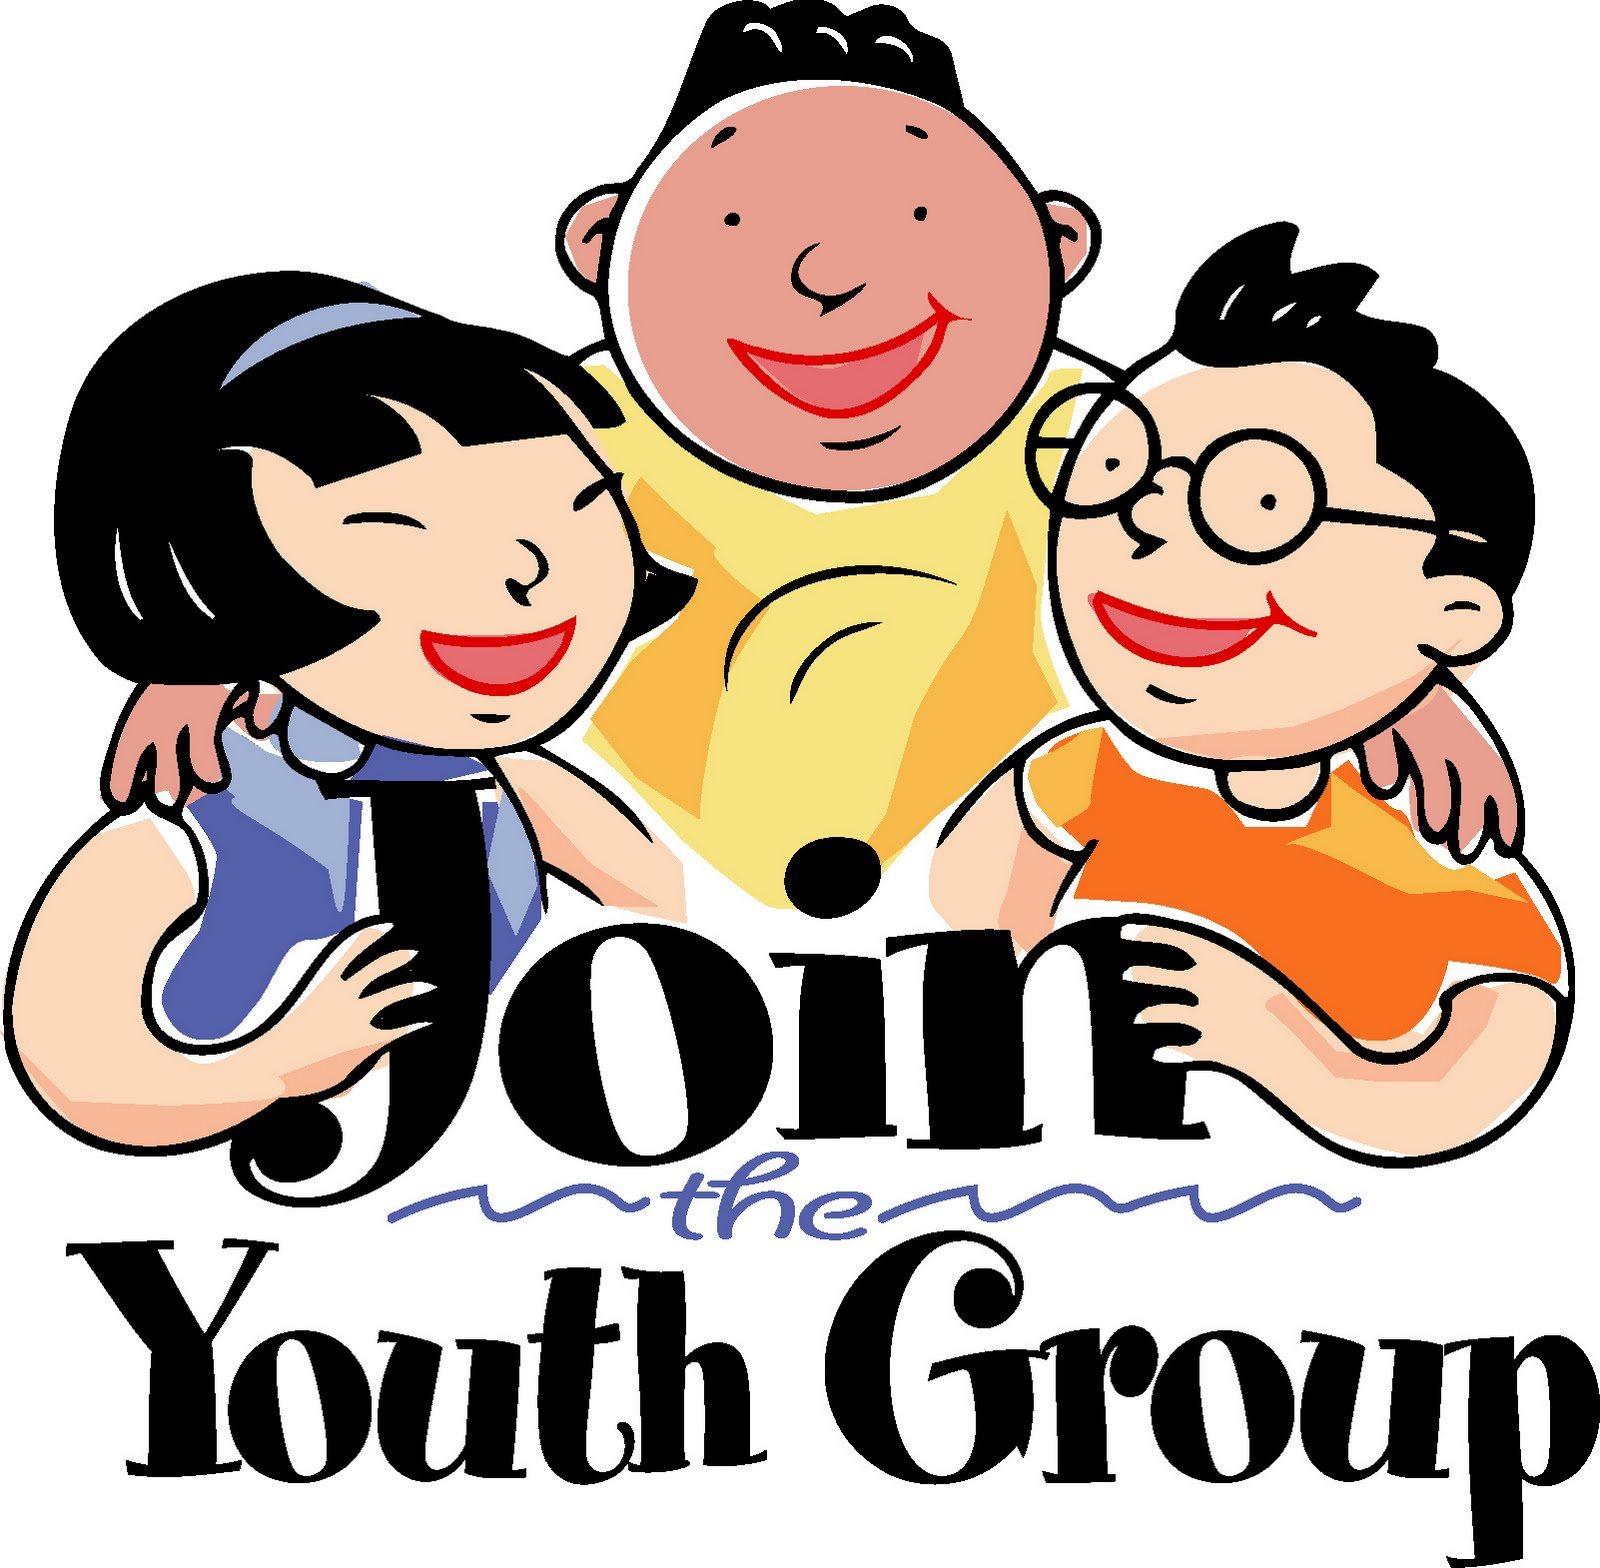 Church Youth Group Clip Art N10 free image.